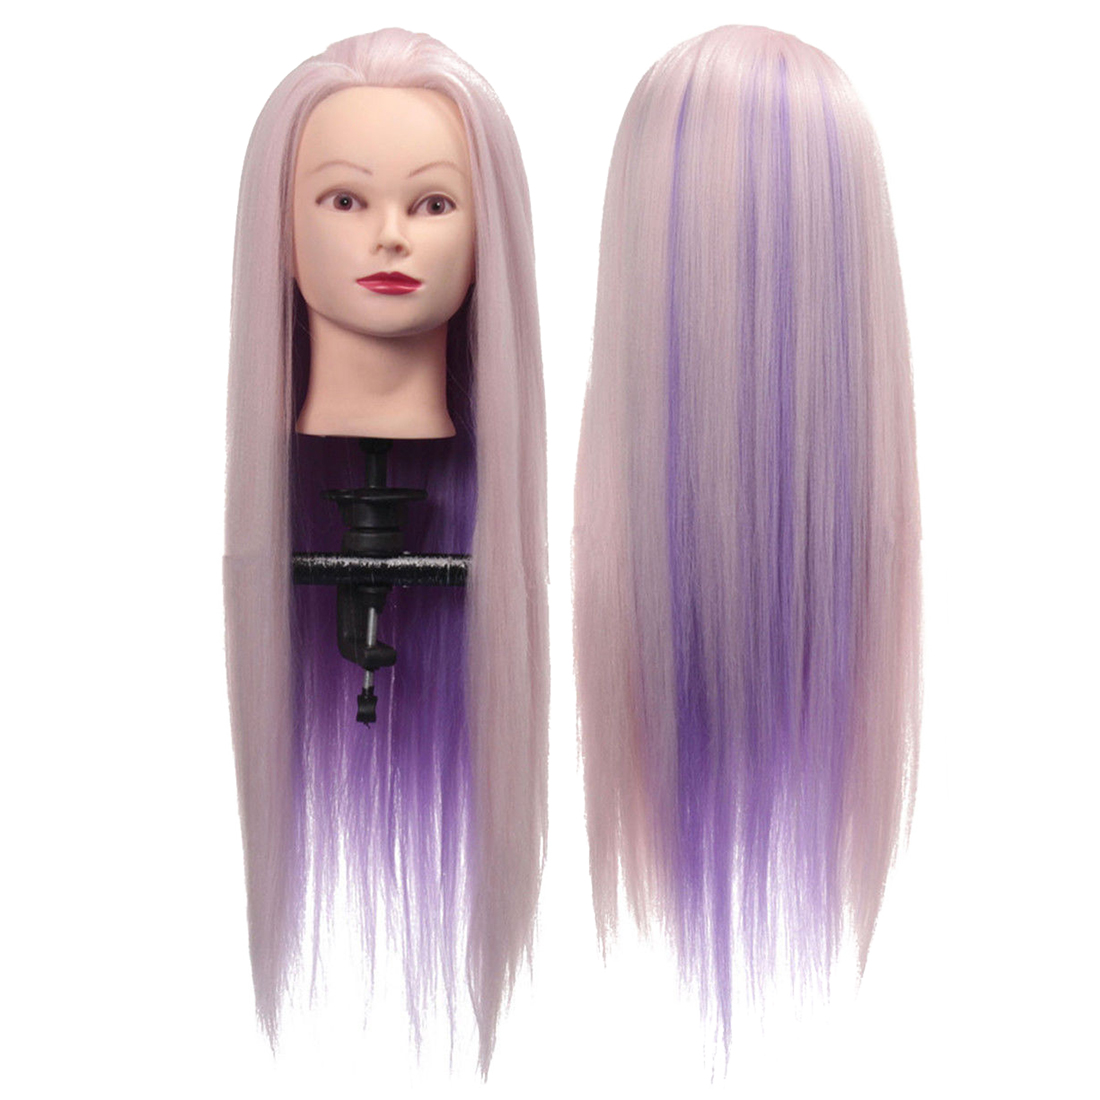 Hair Extensions & Wigs Bald Mannequin Head With Table Clamp And T-pin For Wig Making Best Cosmetology Manikin Model Doll Head For Wig Hat Display Aromatic Flavor